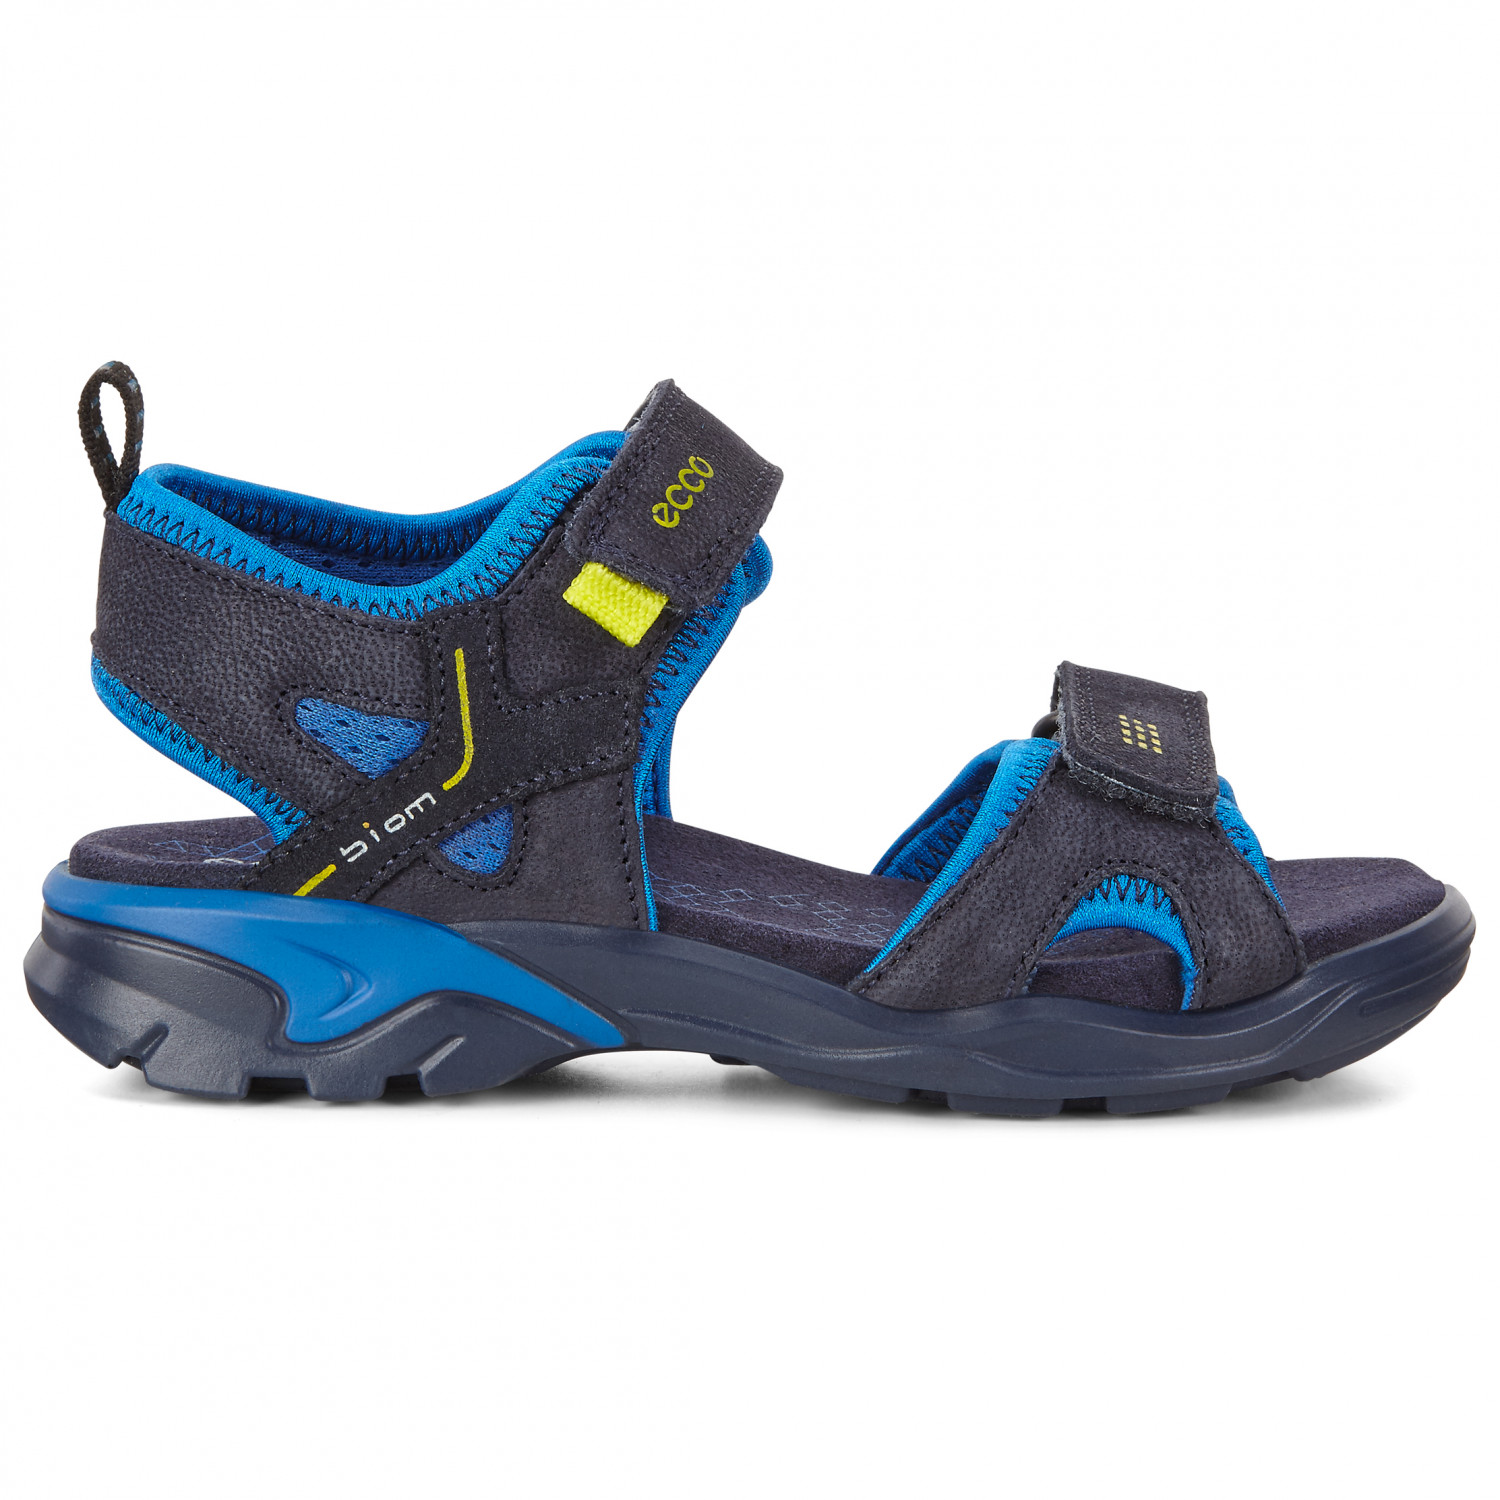 63a96286446 Ecco Biom Raft Two Straps - Sandals Kids | Free UK Delivery ...